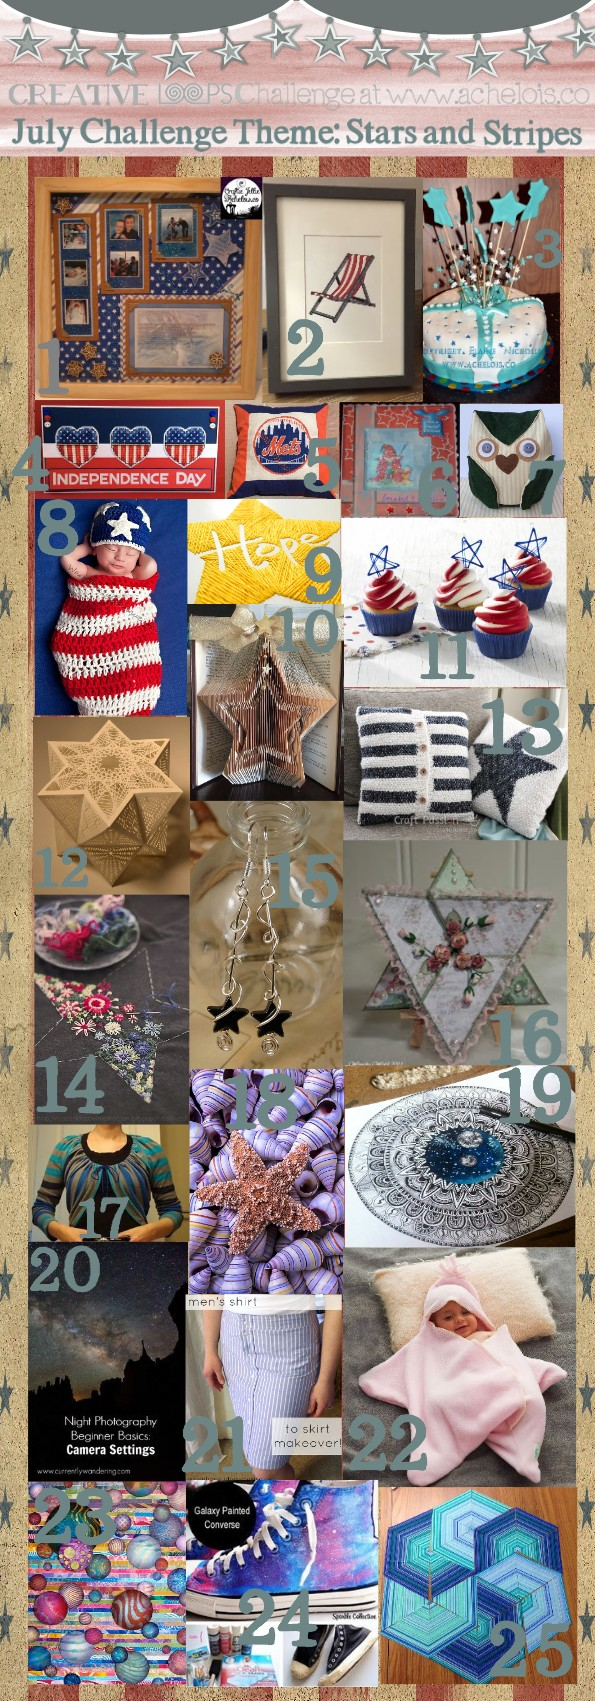 Creative loops challenge Stars and Stripes